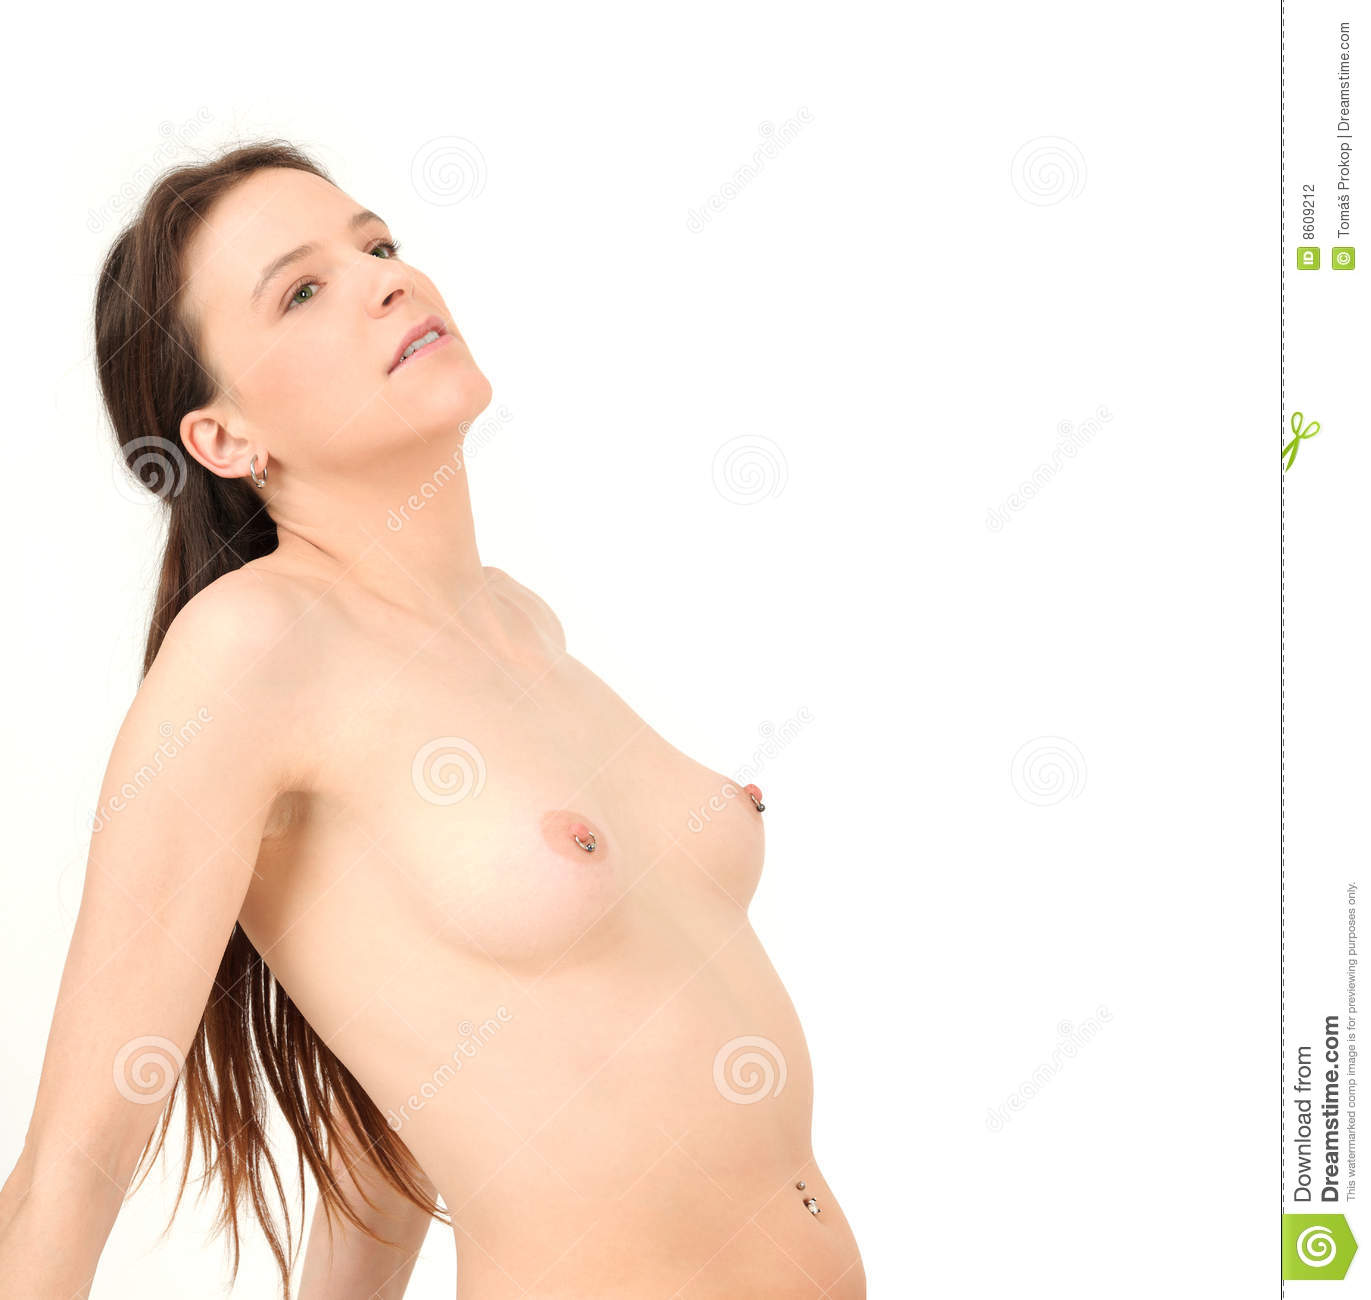 young and naked woman showing pierced breasts stock photo - image of